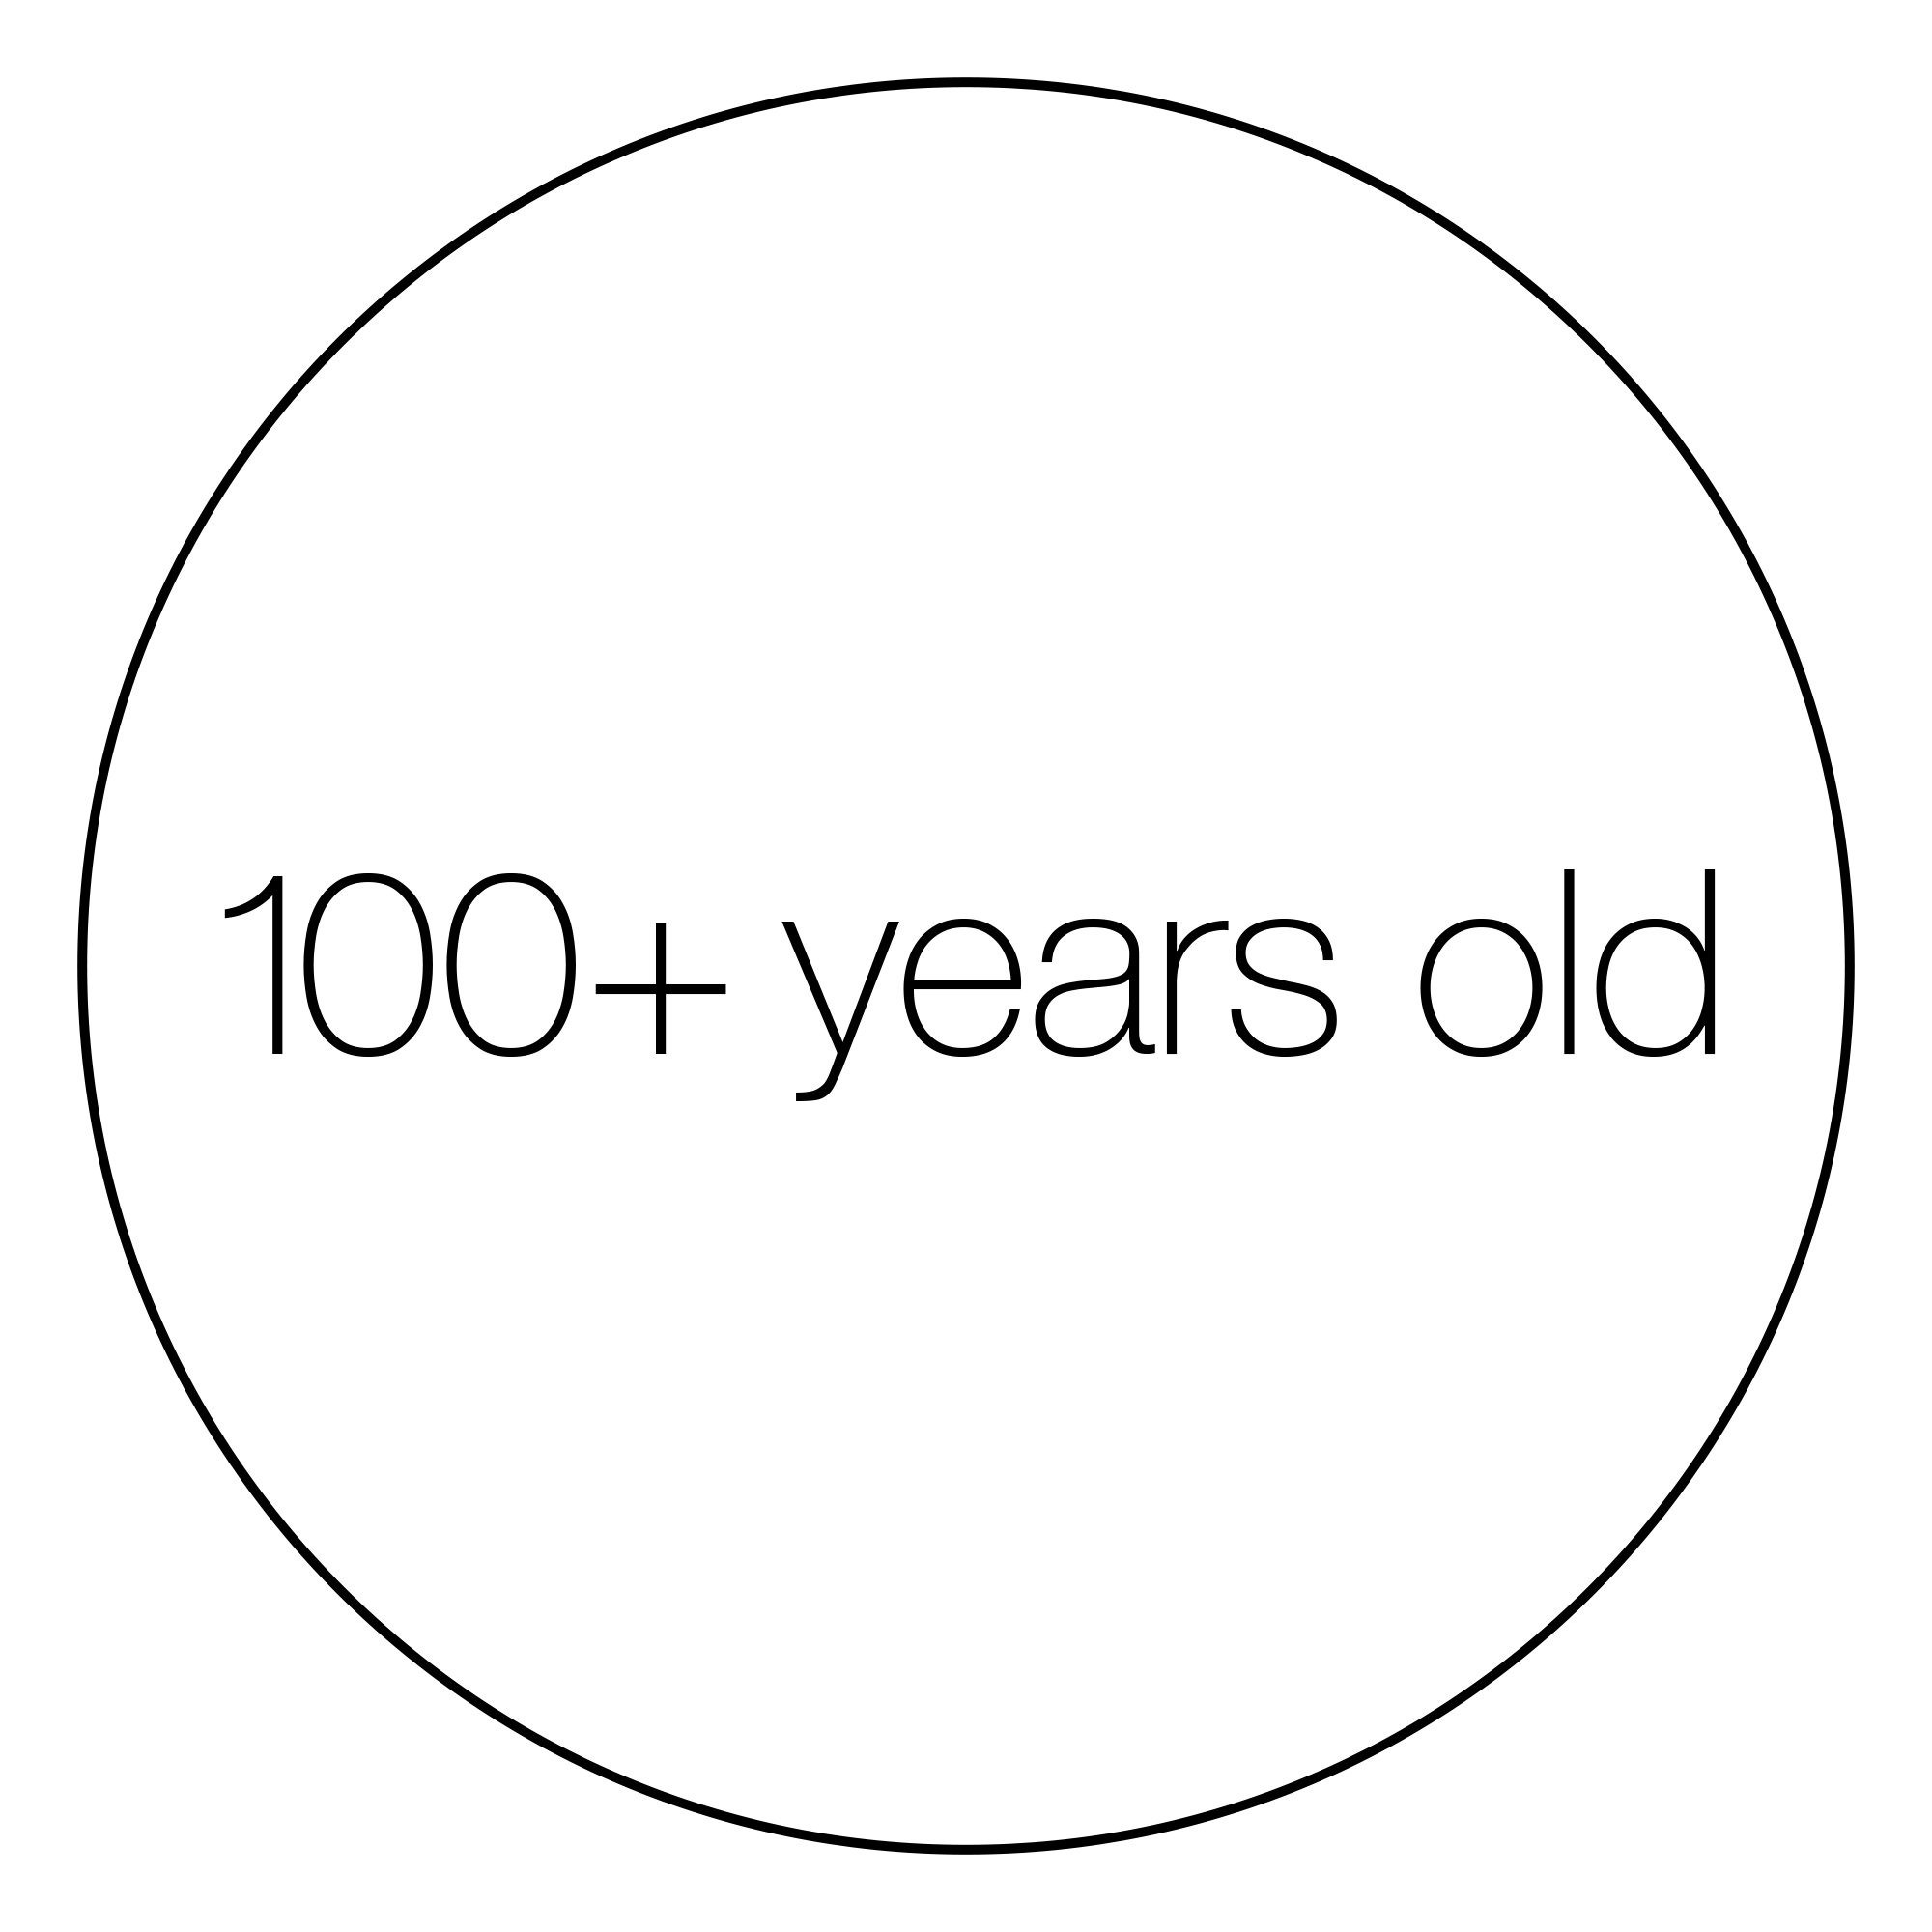 attribute-age-100-plus-years-old